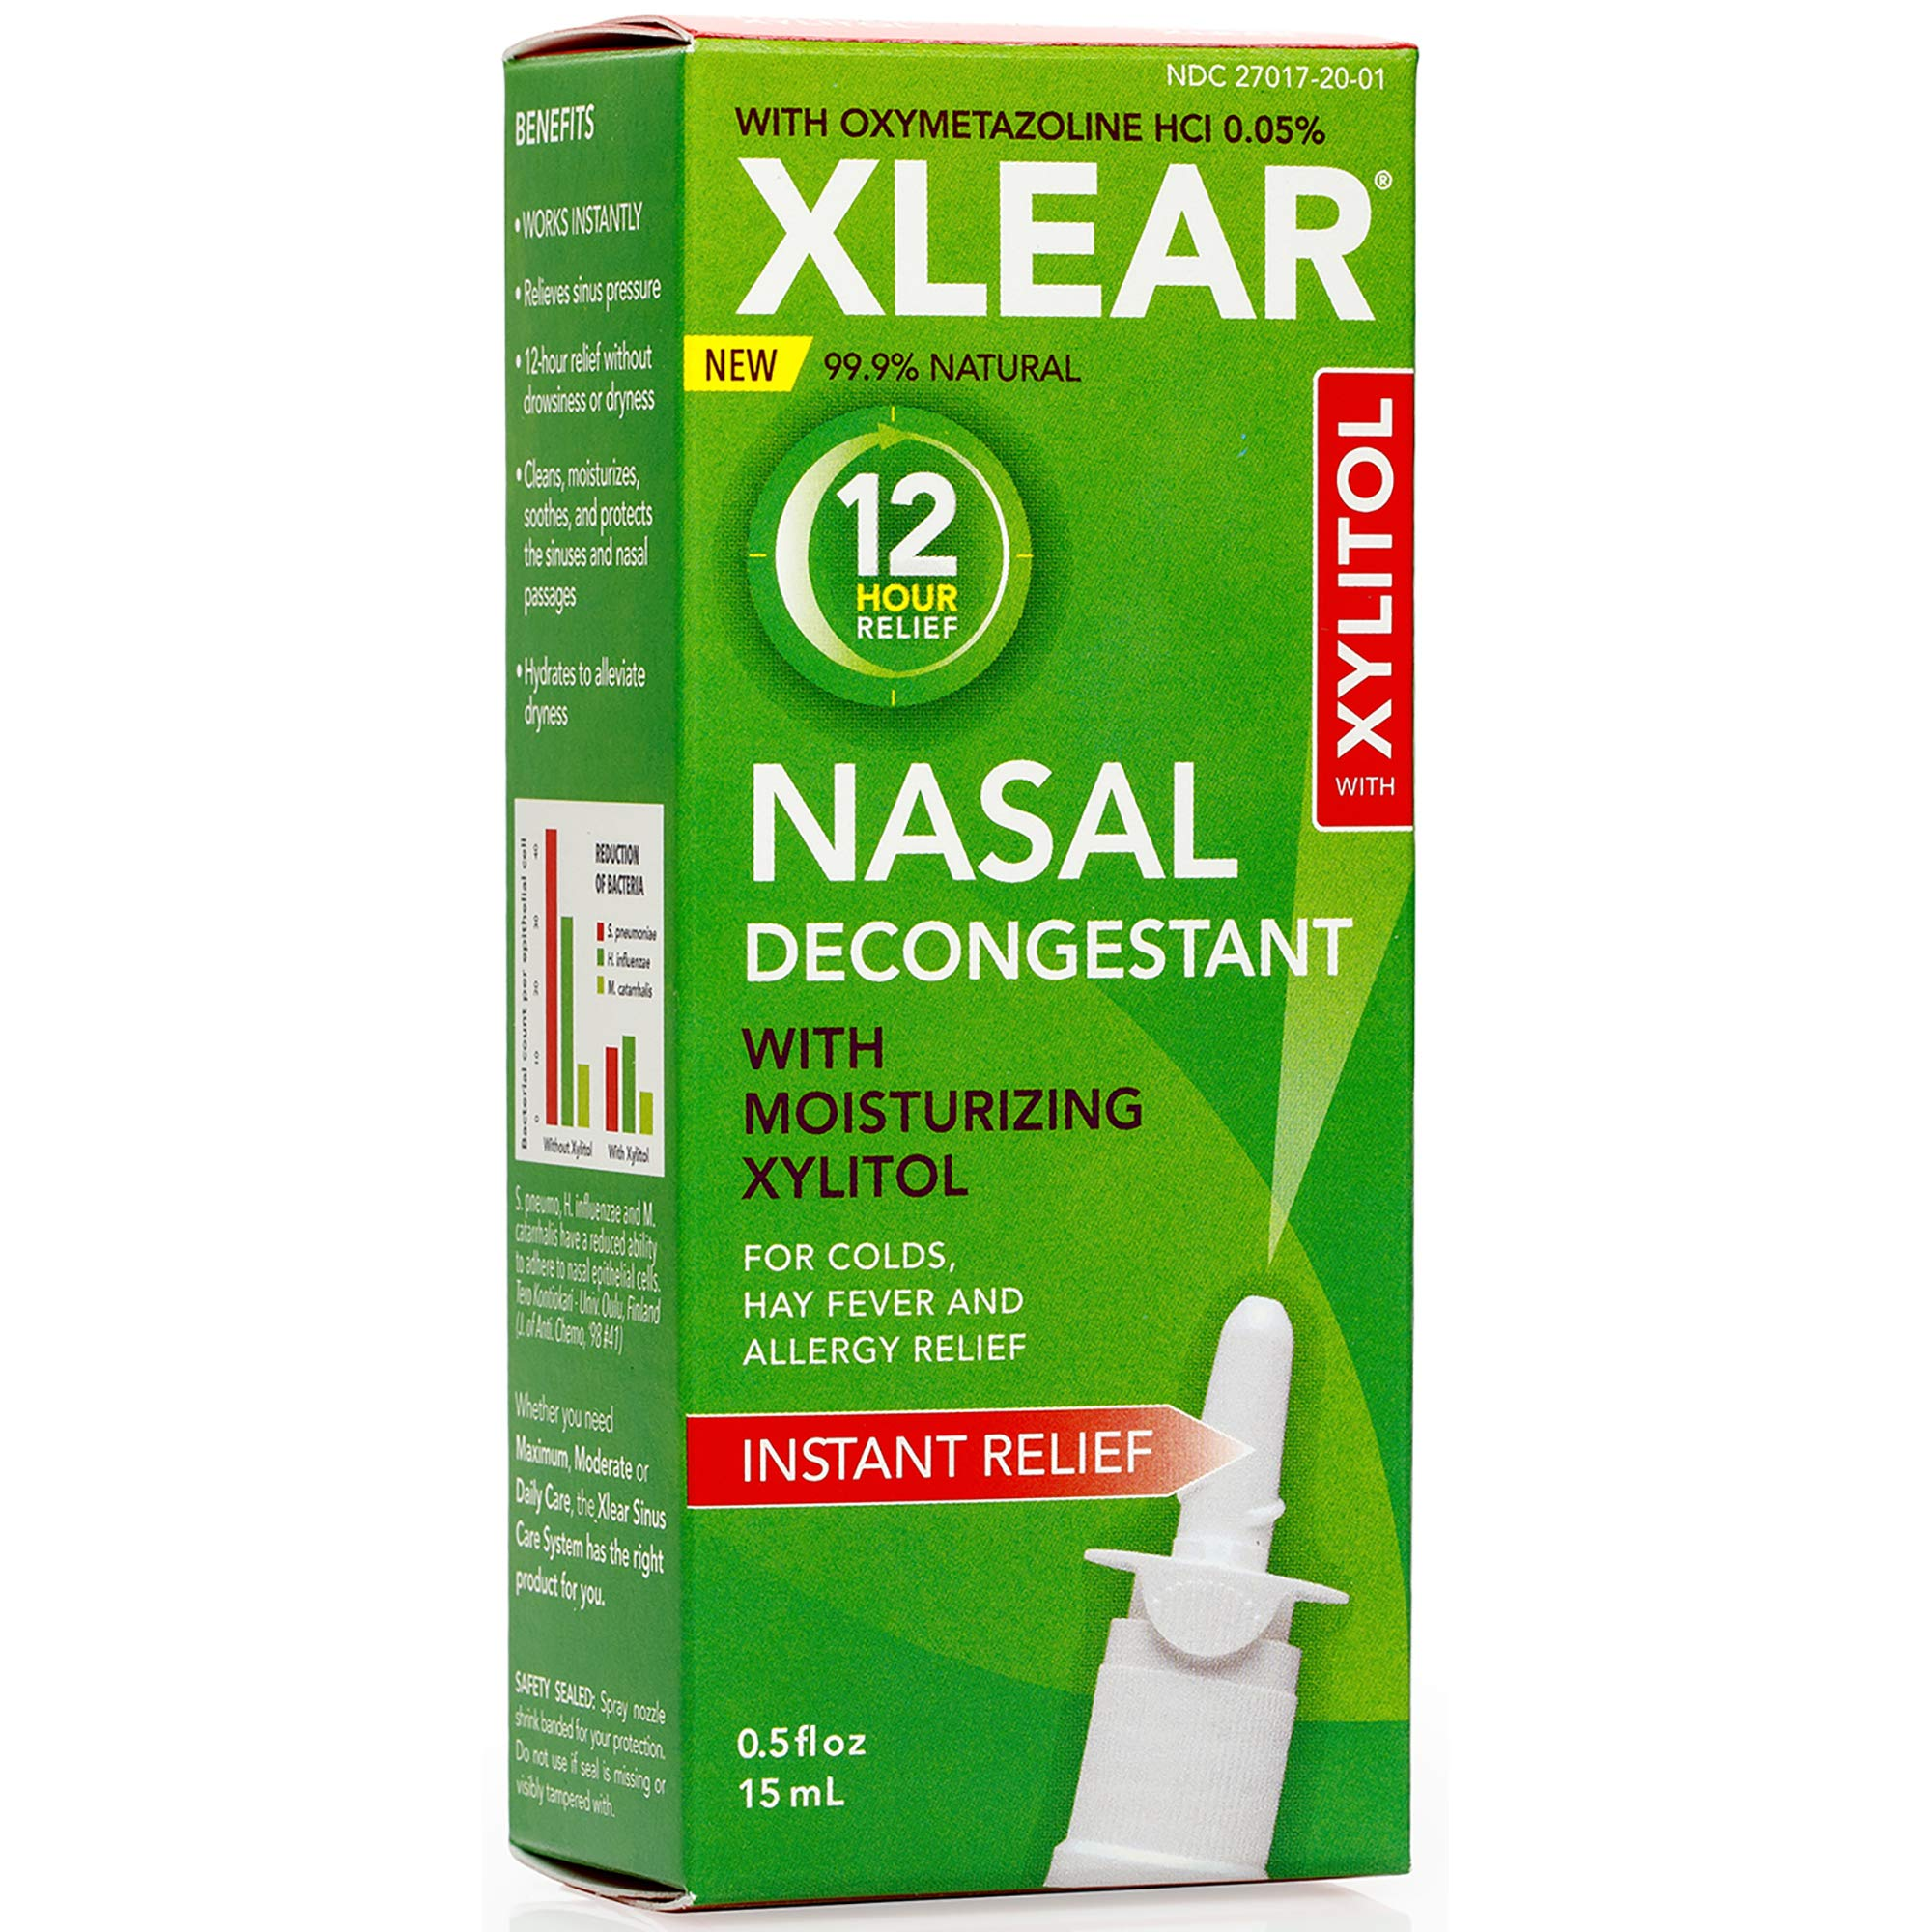 XLEAR 12-Hour Decongestant Natural Saline Nasal Spray with Xylitol & Oxymetazoline, 0.5 fl oz (Pack of 4) by Xlear